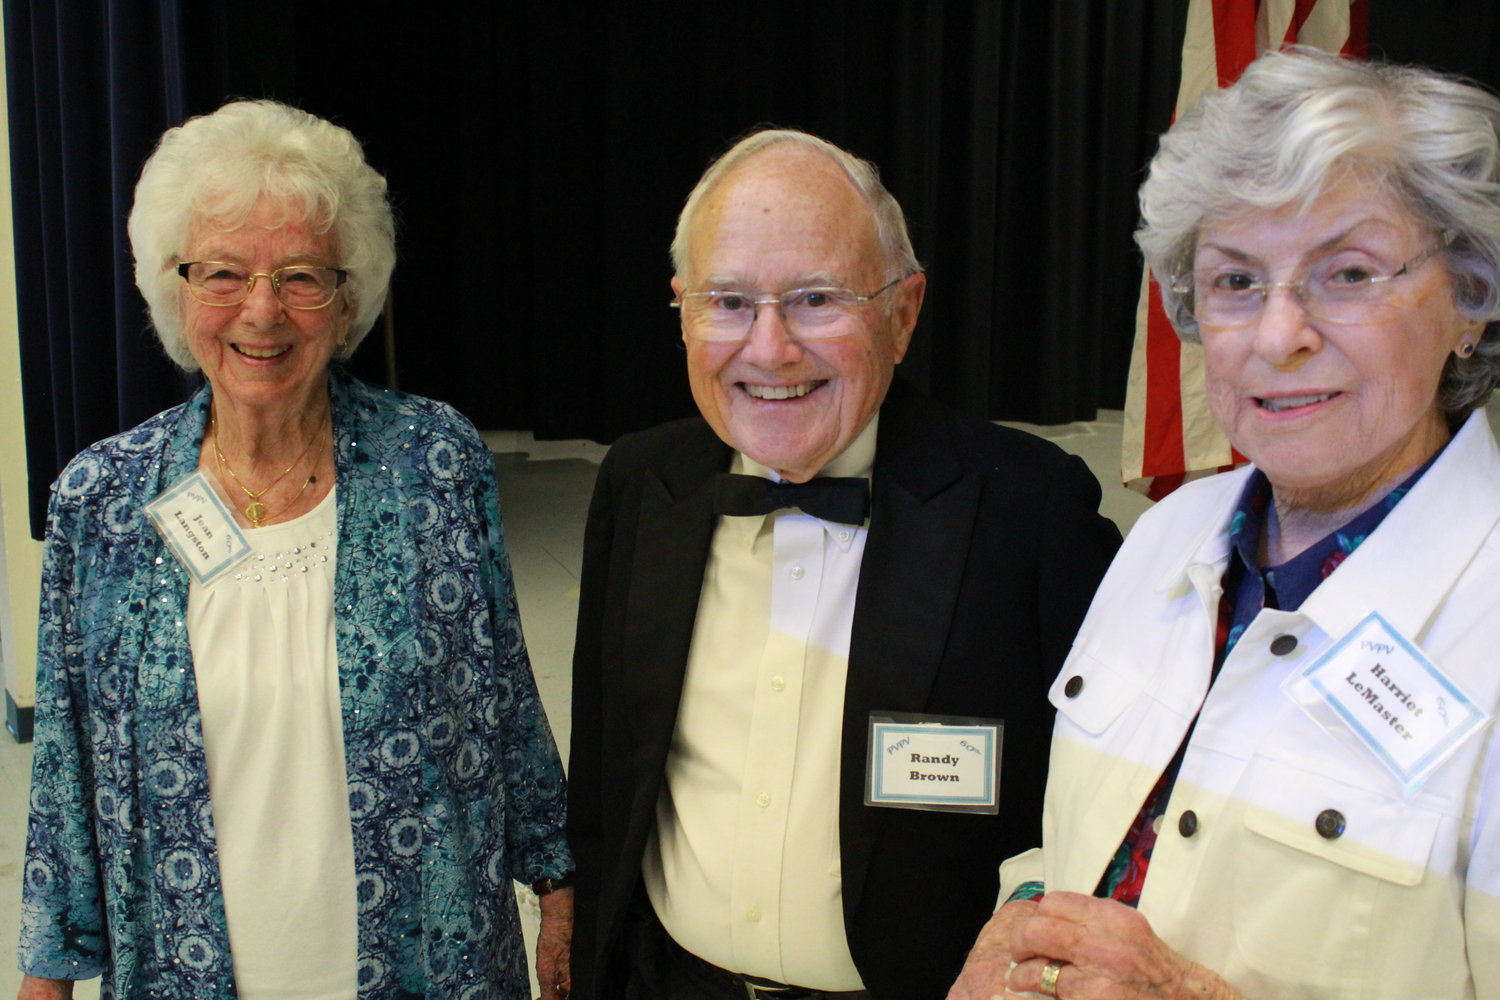 Jean Landrum Langston, Randy Brown and Harriet LeMaster gather at the 60th anniversary celebration of PVPV/Rawlings Elementary School on Friday, Feb. 22.